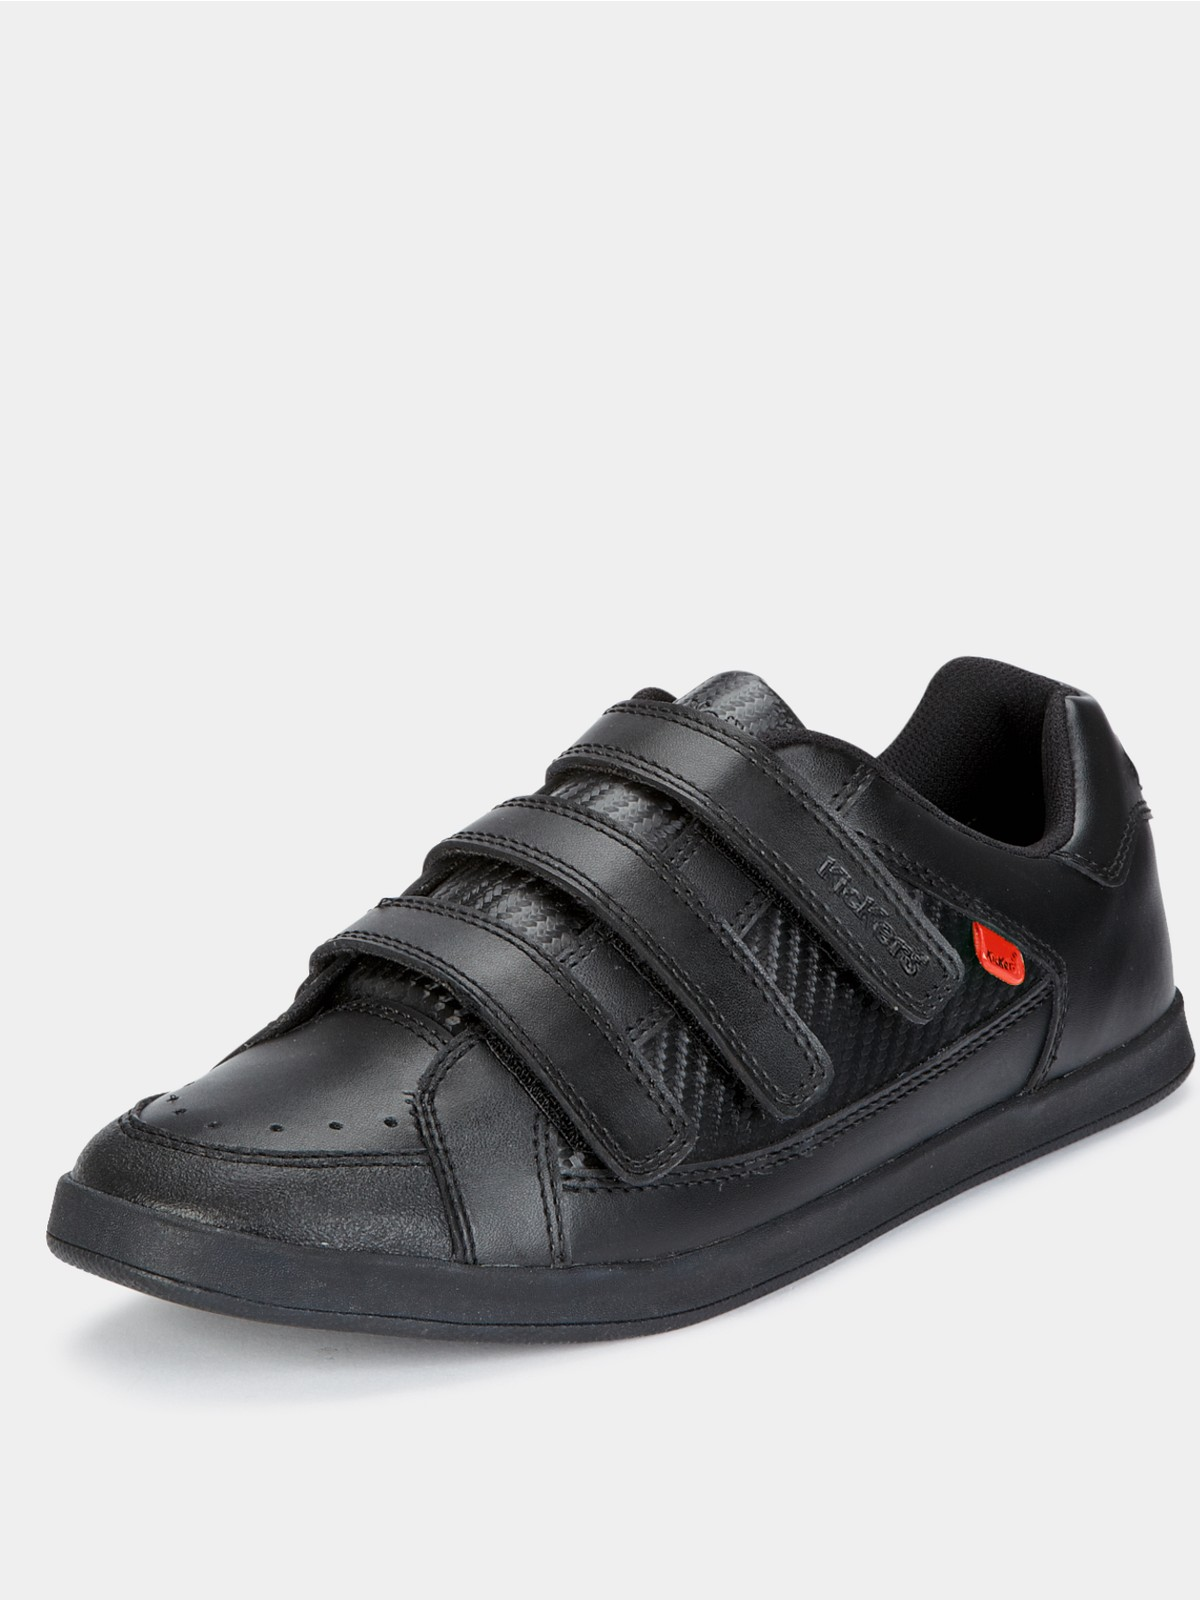 kickers kickers menilla mens shoes in black for